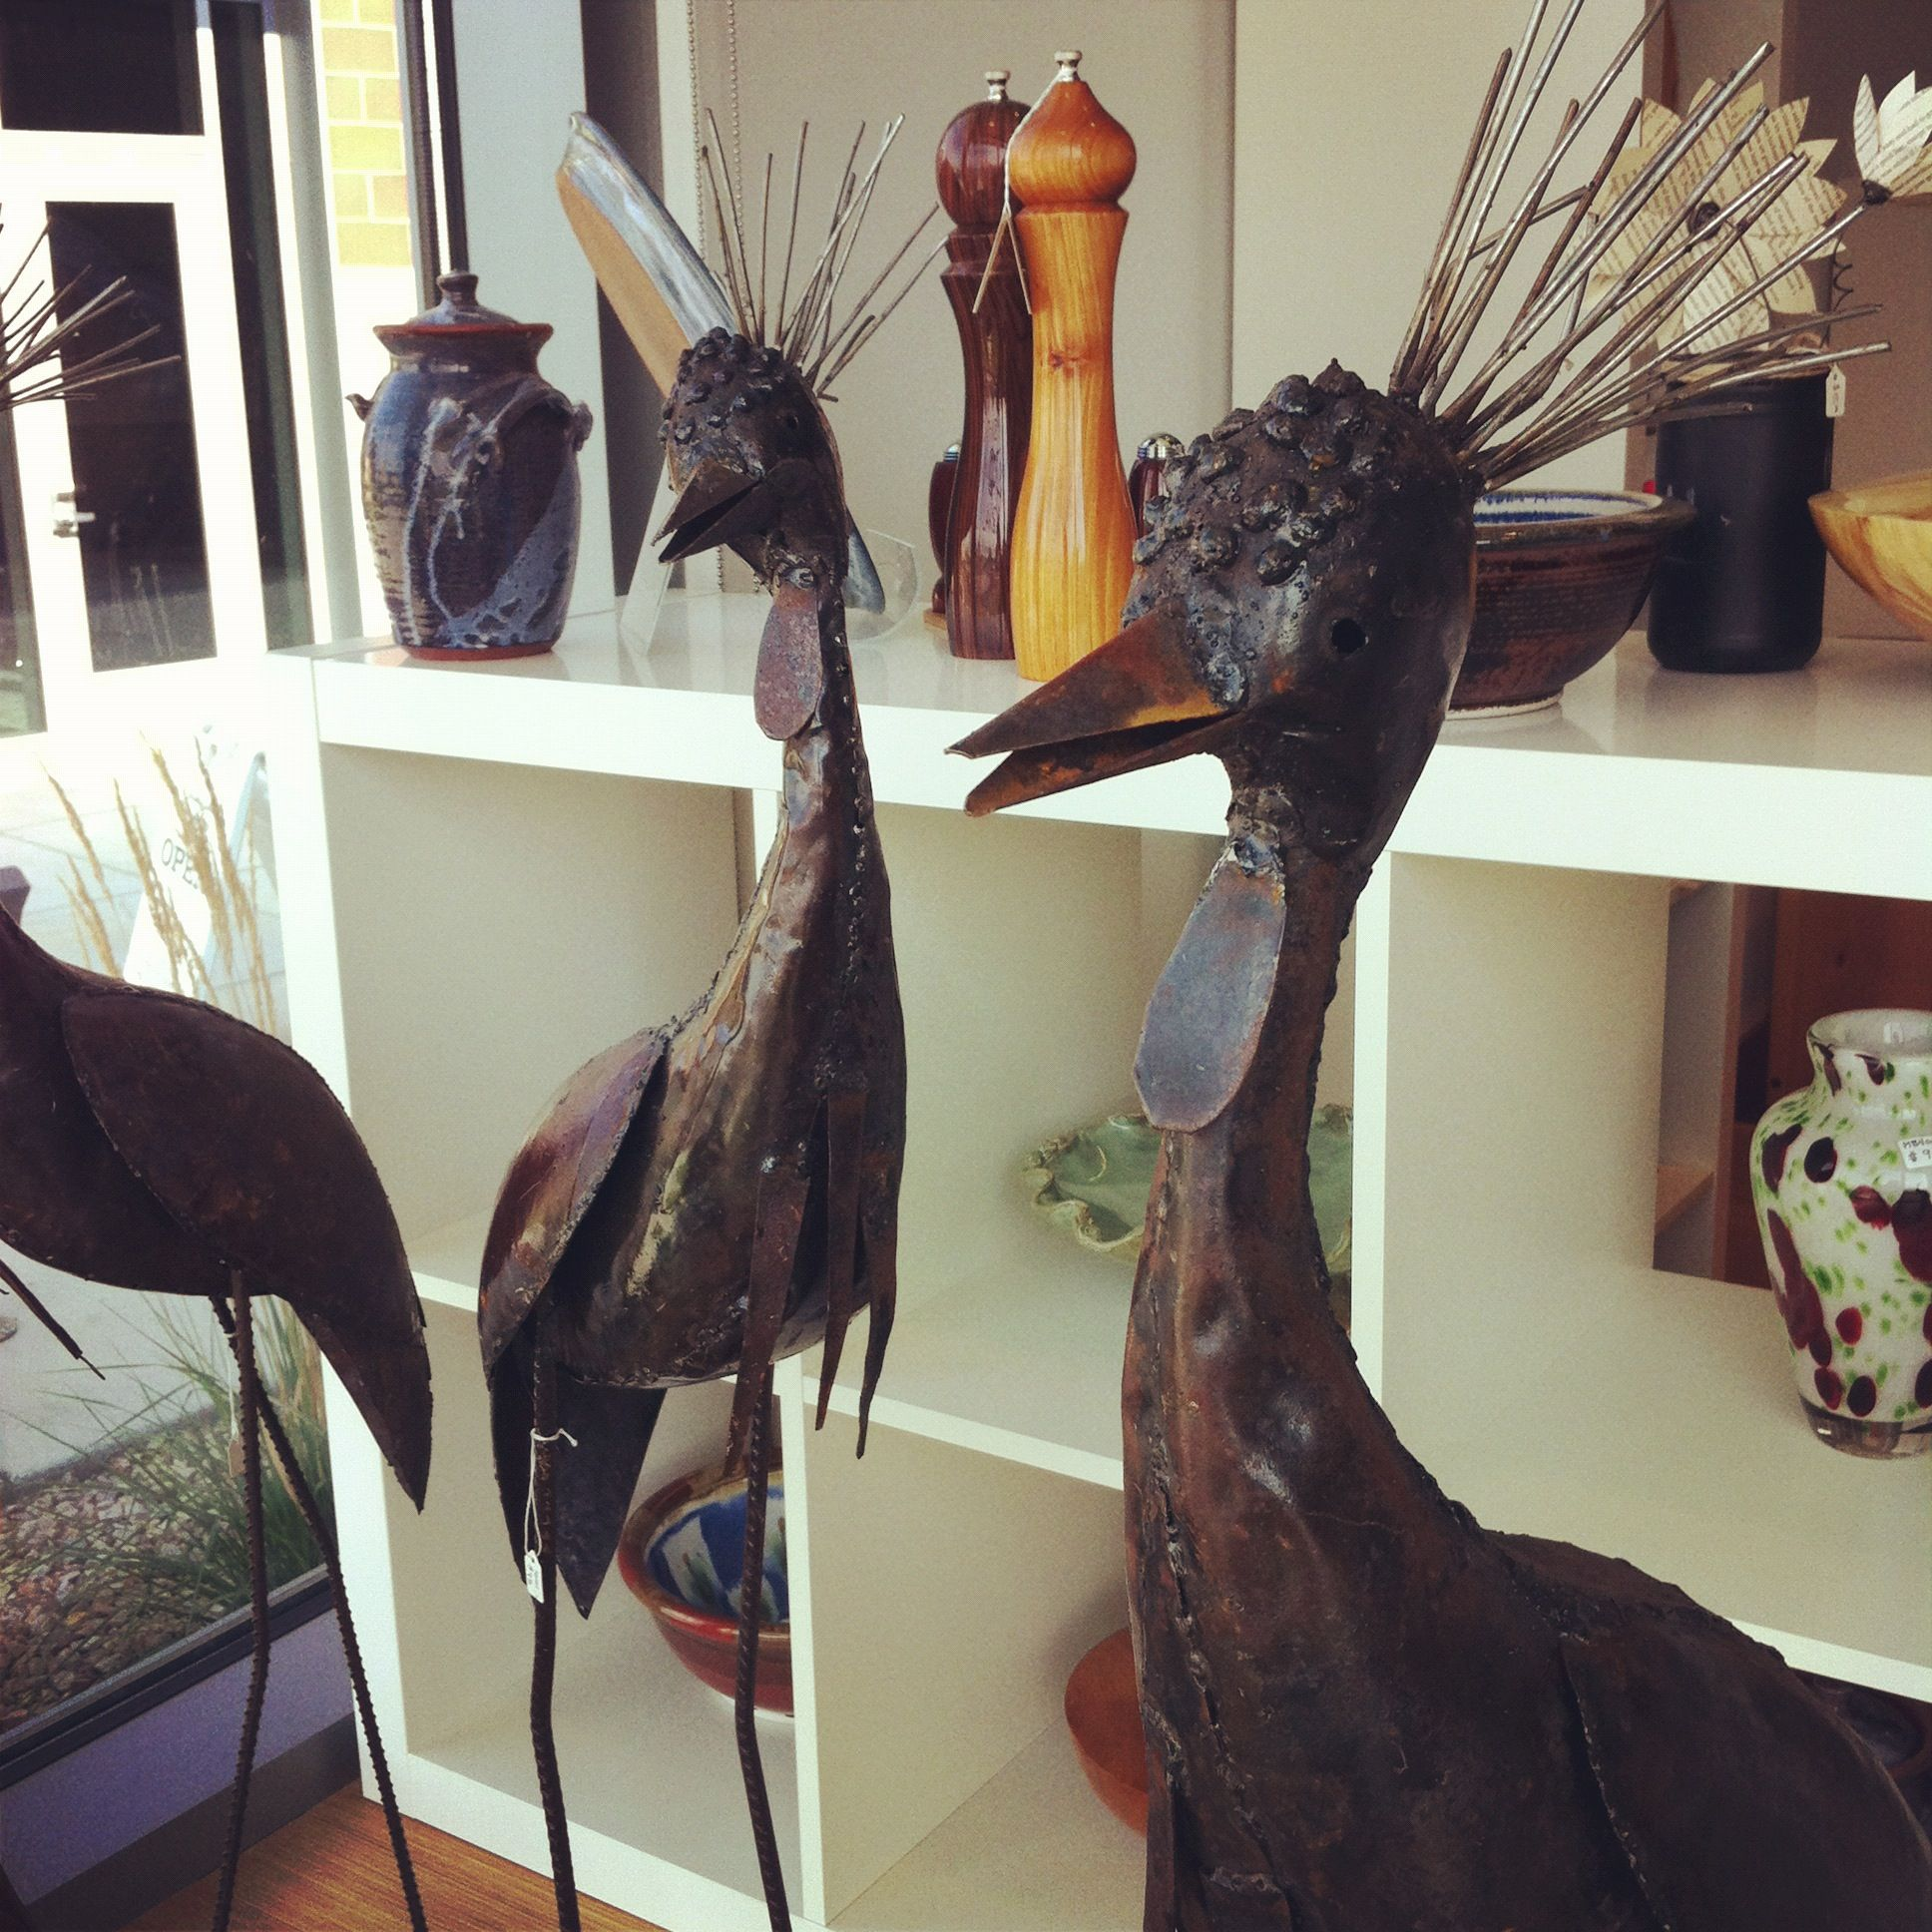 Metal sculpture from Zimbabwe, imported directly from the artists through a regional partnership with David & Carol Cross of Ellensburg WA.